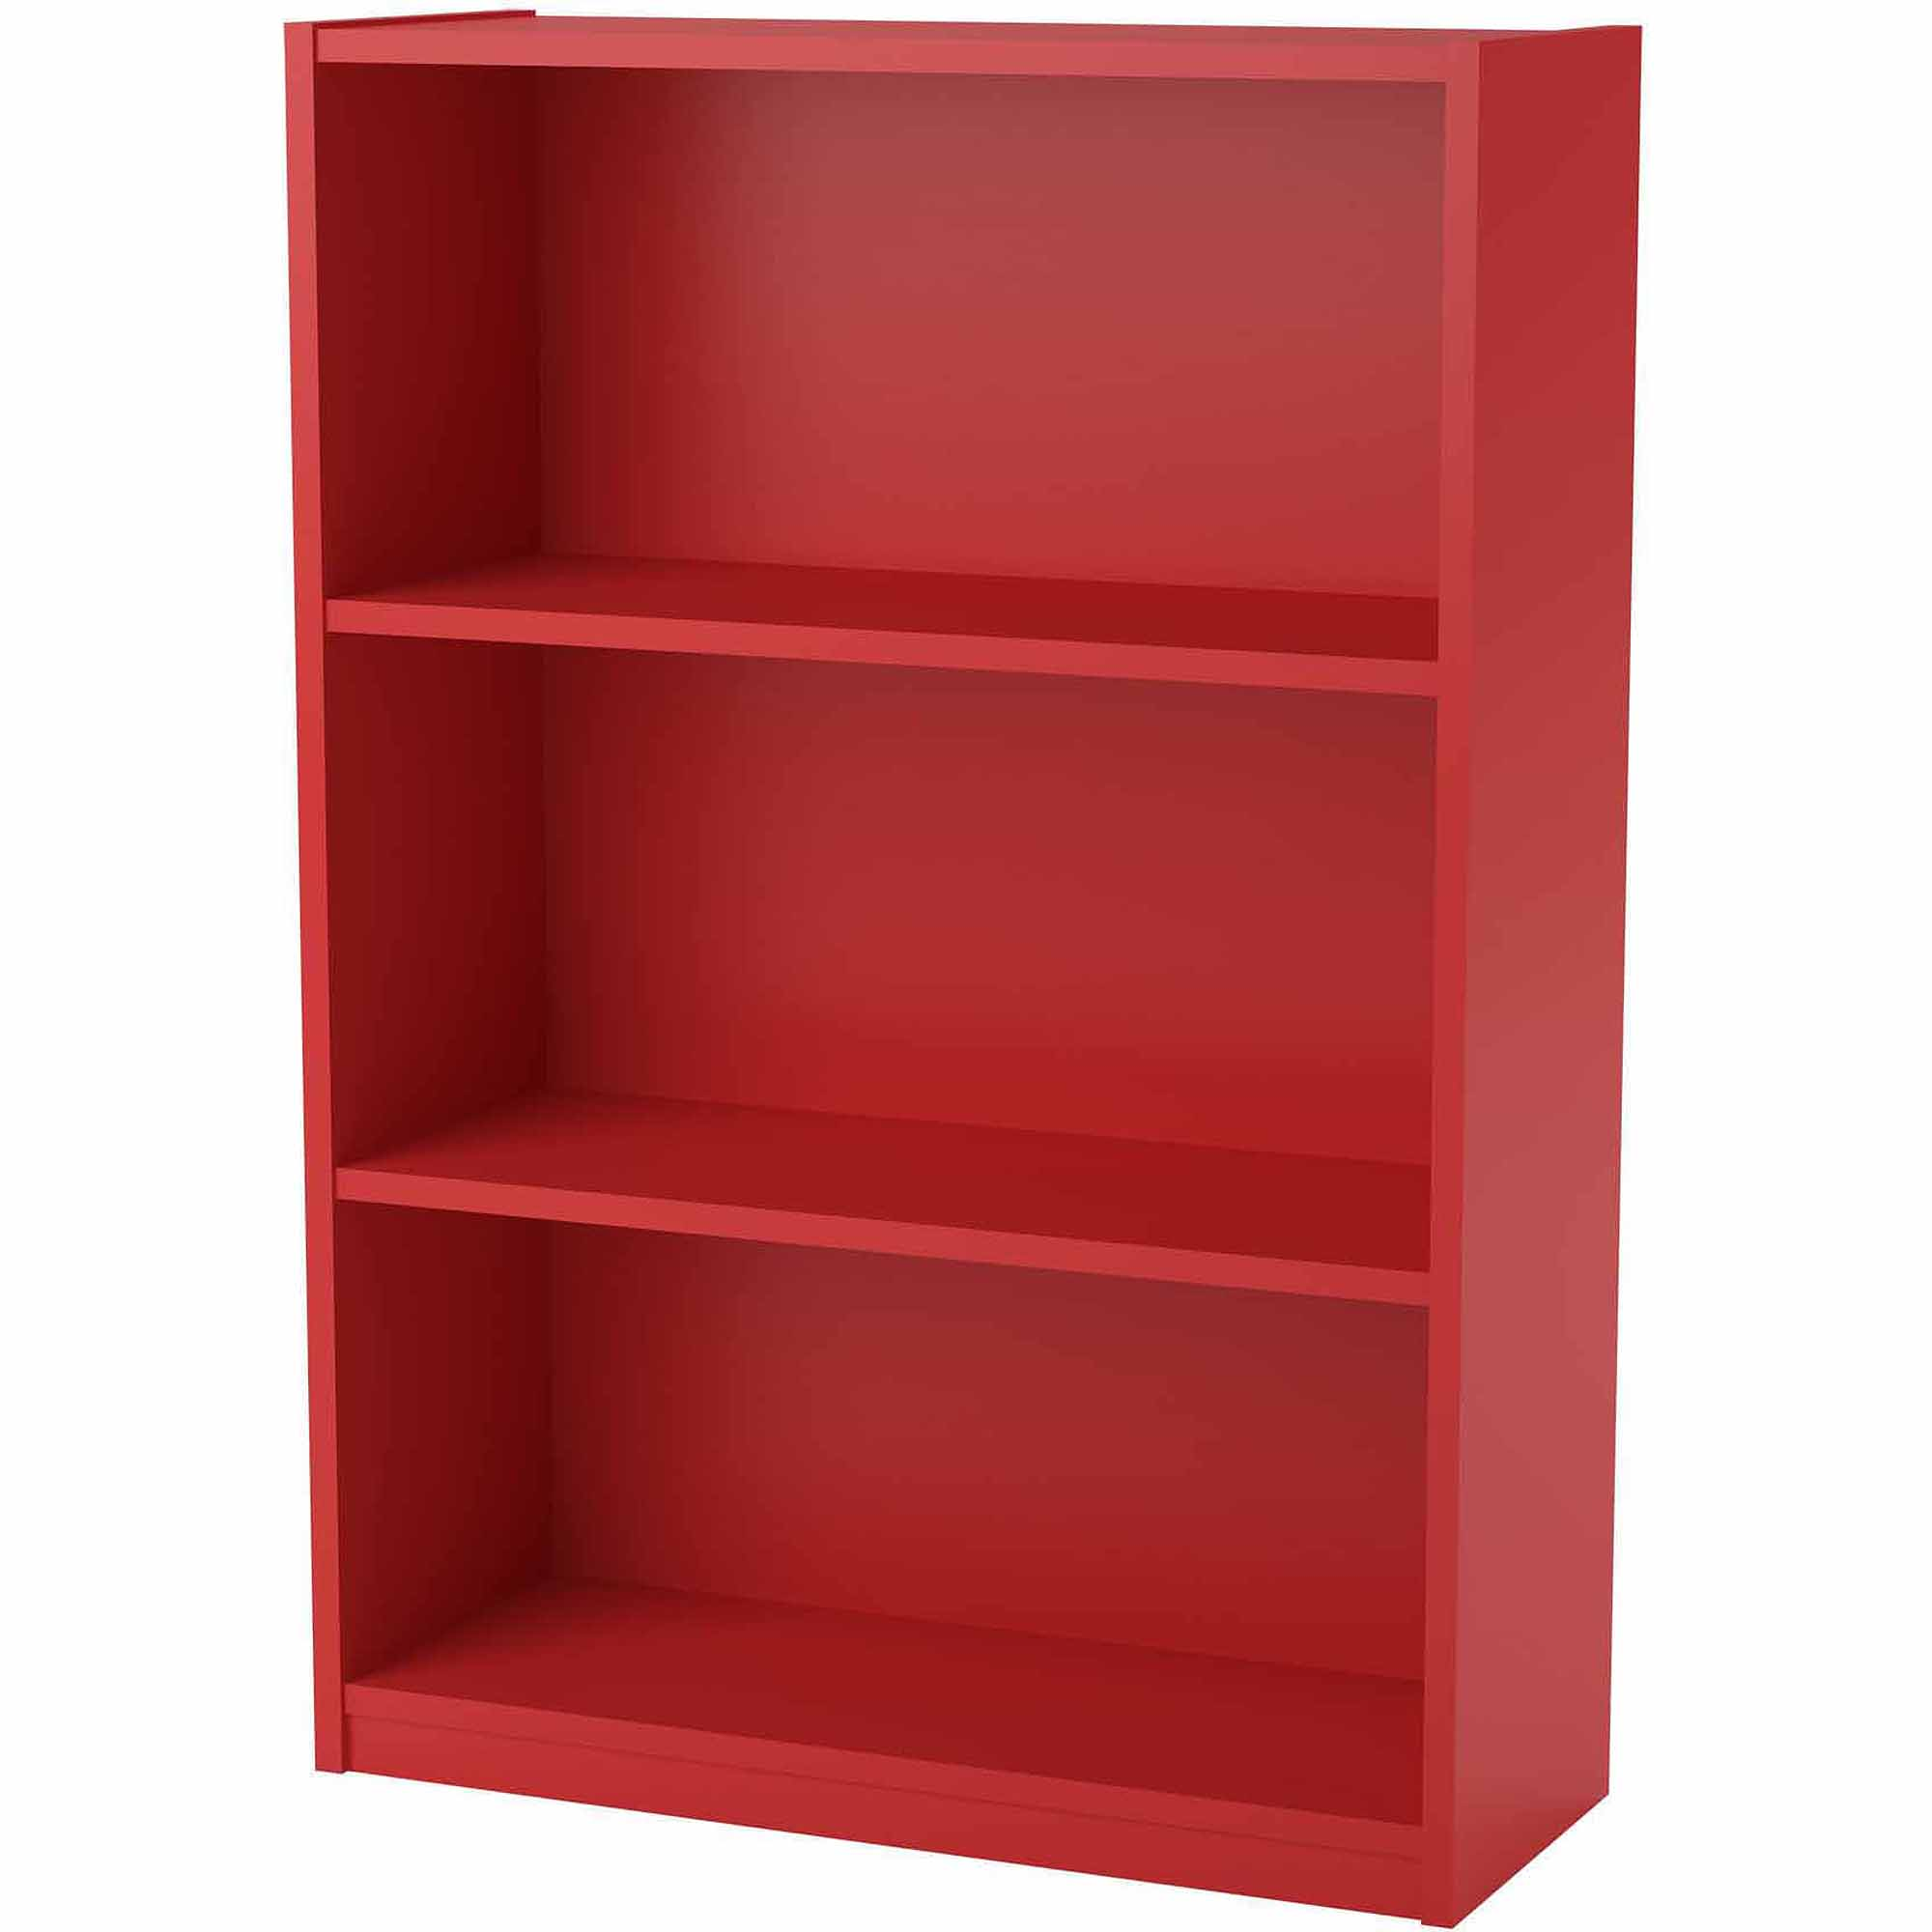 wood bookcase ameriwood 3-shelf bookcase, multiple finishes - walmart.com UXHVTEZ